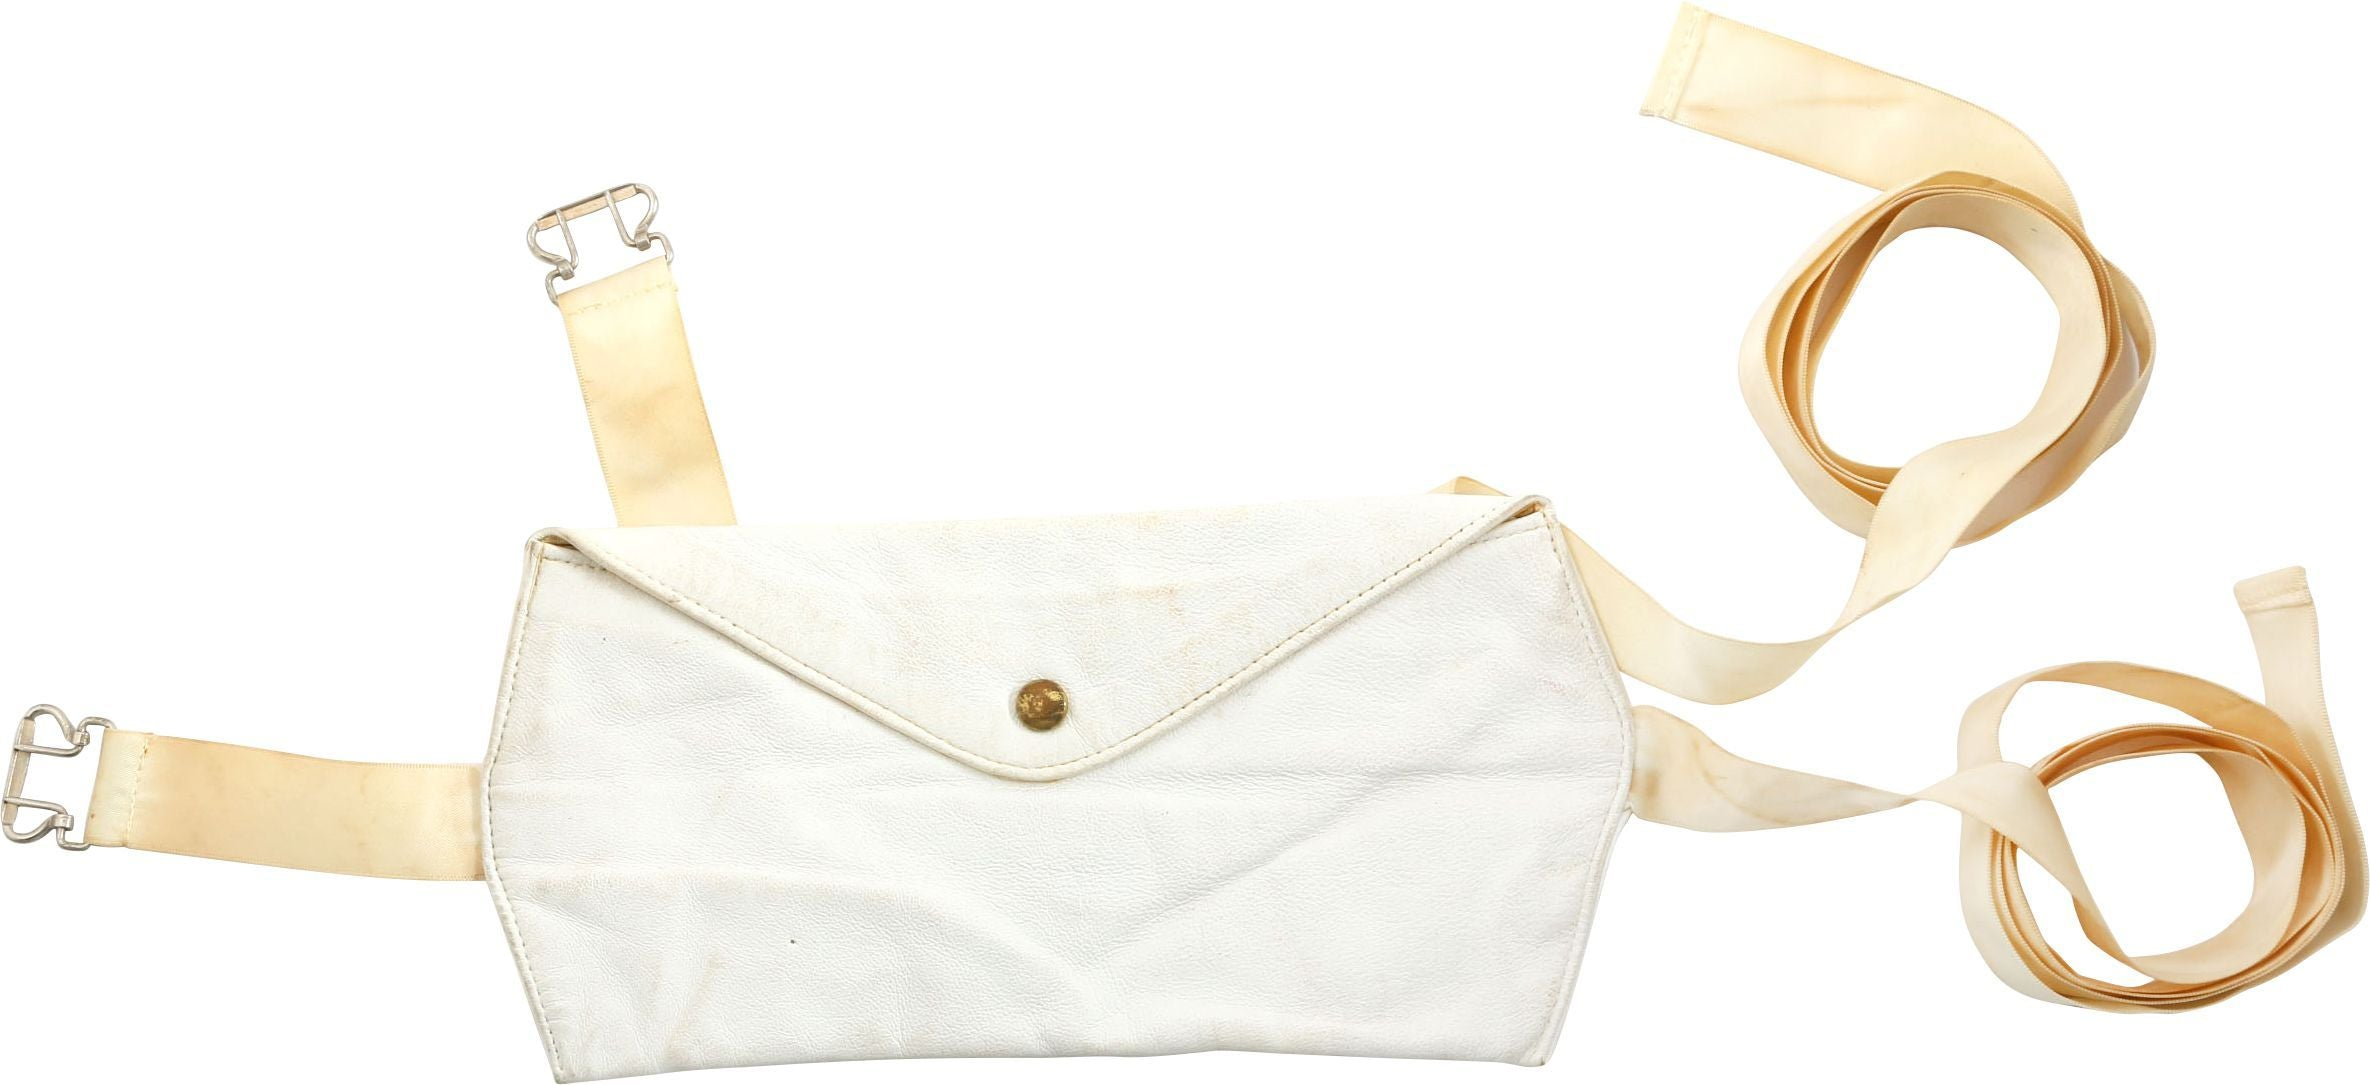 Ladies Concealed Money Pouch - Product